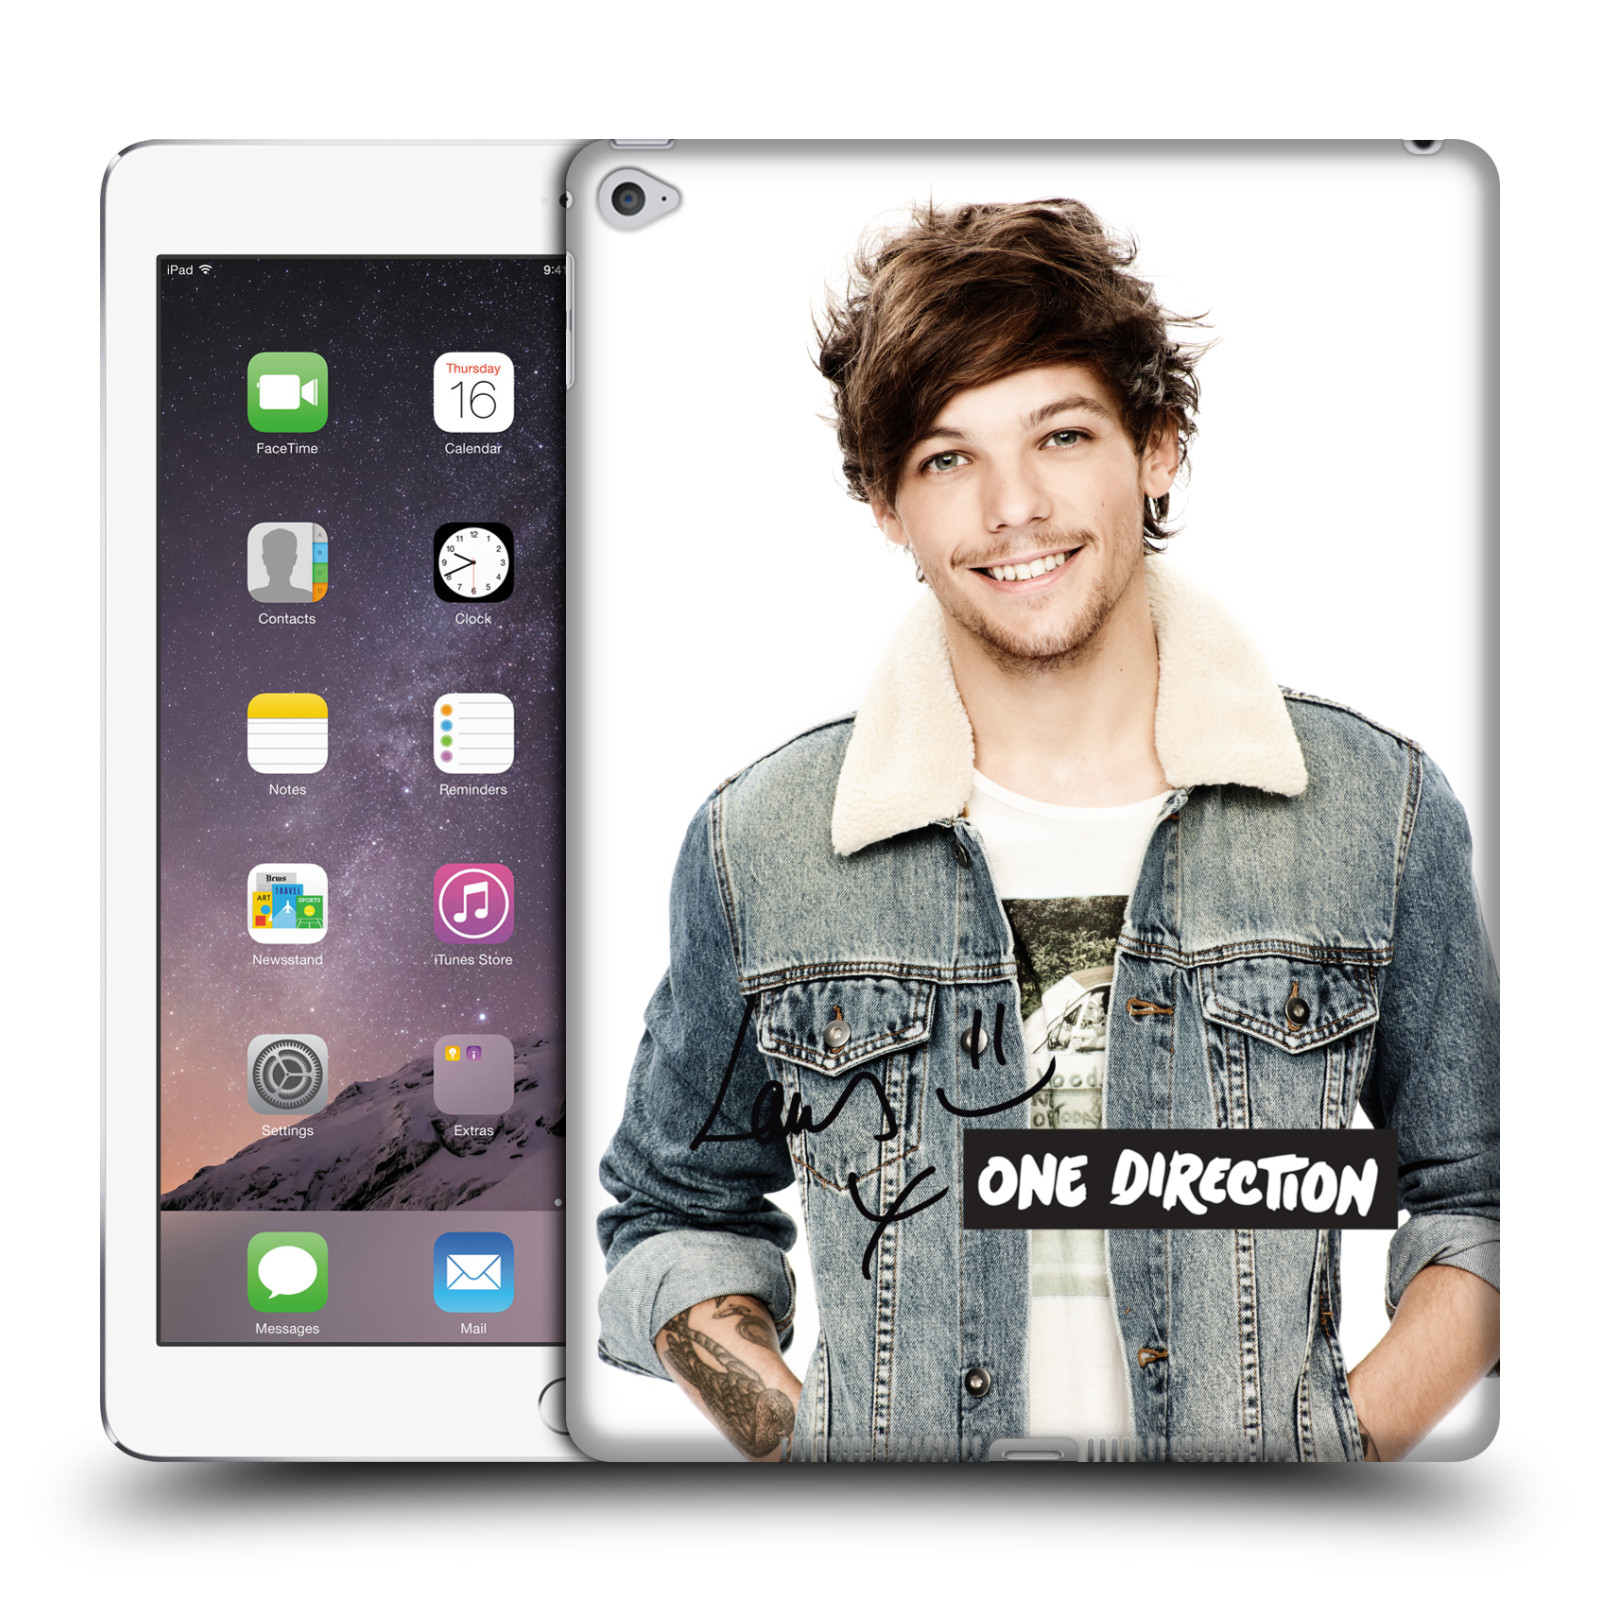 American Car Insurance Firm Uses Fast And Furious Star: Louis Tomlinson X Reader